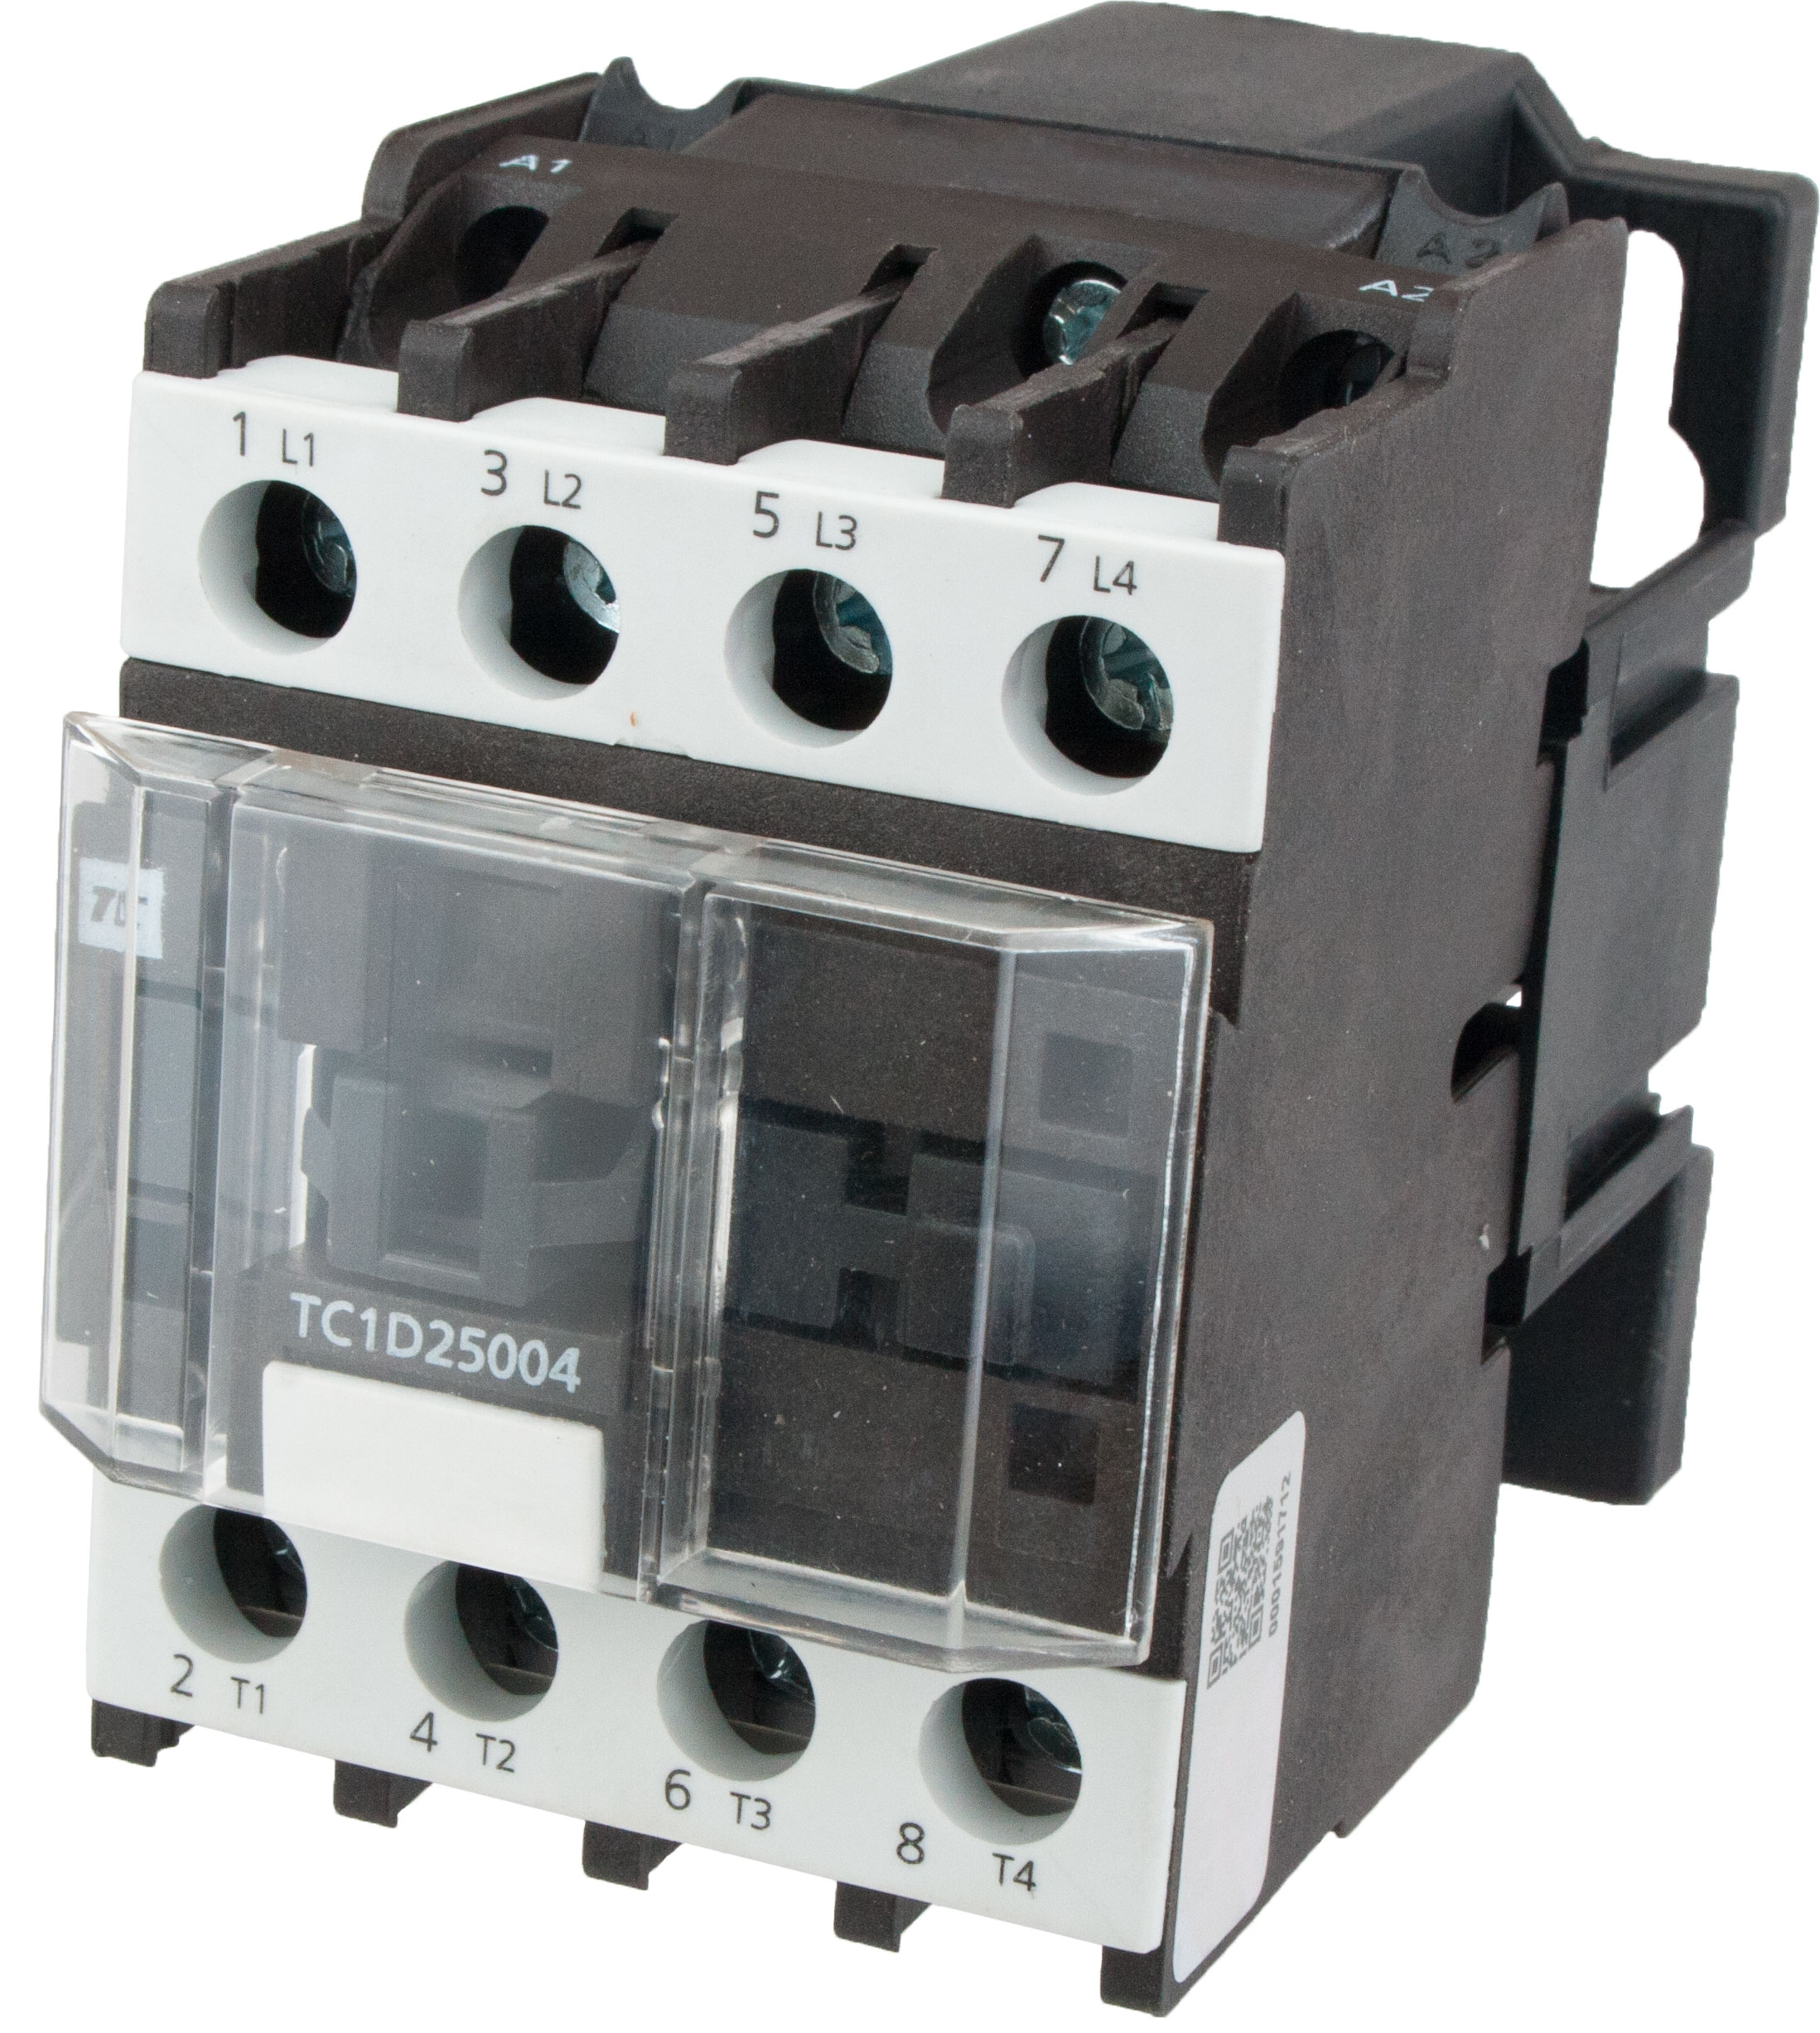 4 Pole Contactor 25 Amp N O 220 Volt Ac Coil Tc1d25004m7 Breaker Fuse Box With Elecdirect